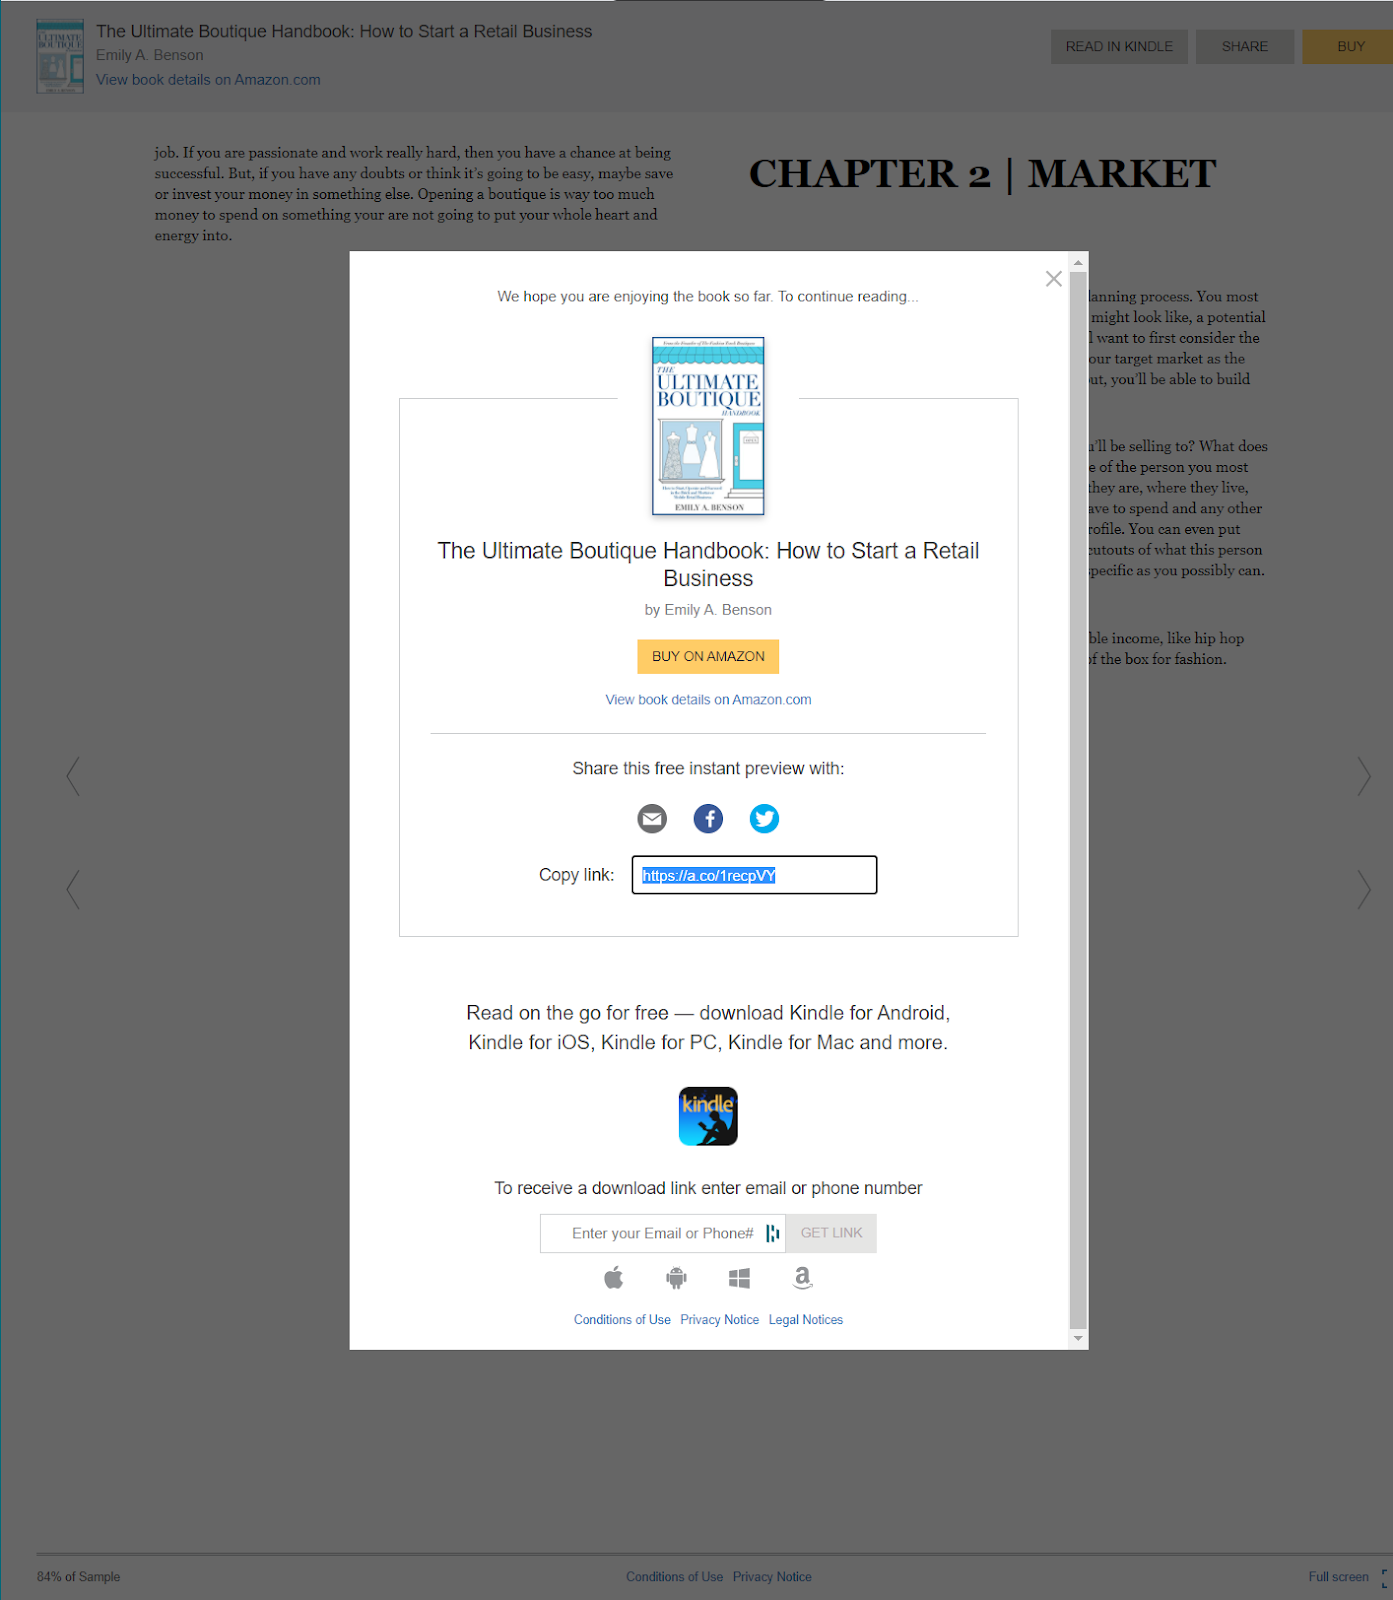 Screenshot of a website asking visitors to buy the book Ultimate Boutique Handbook